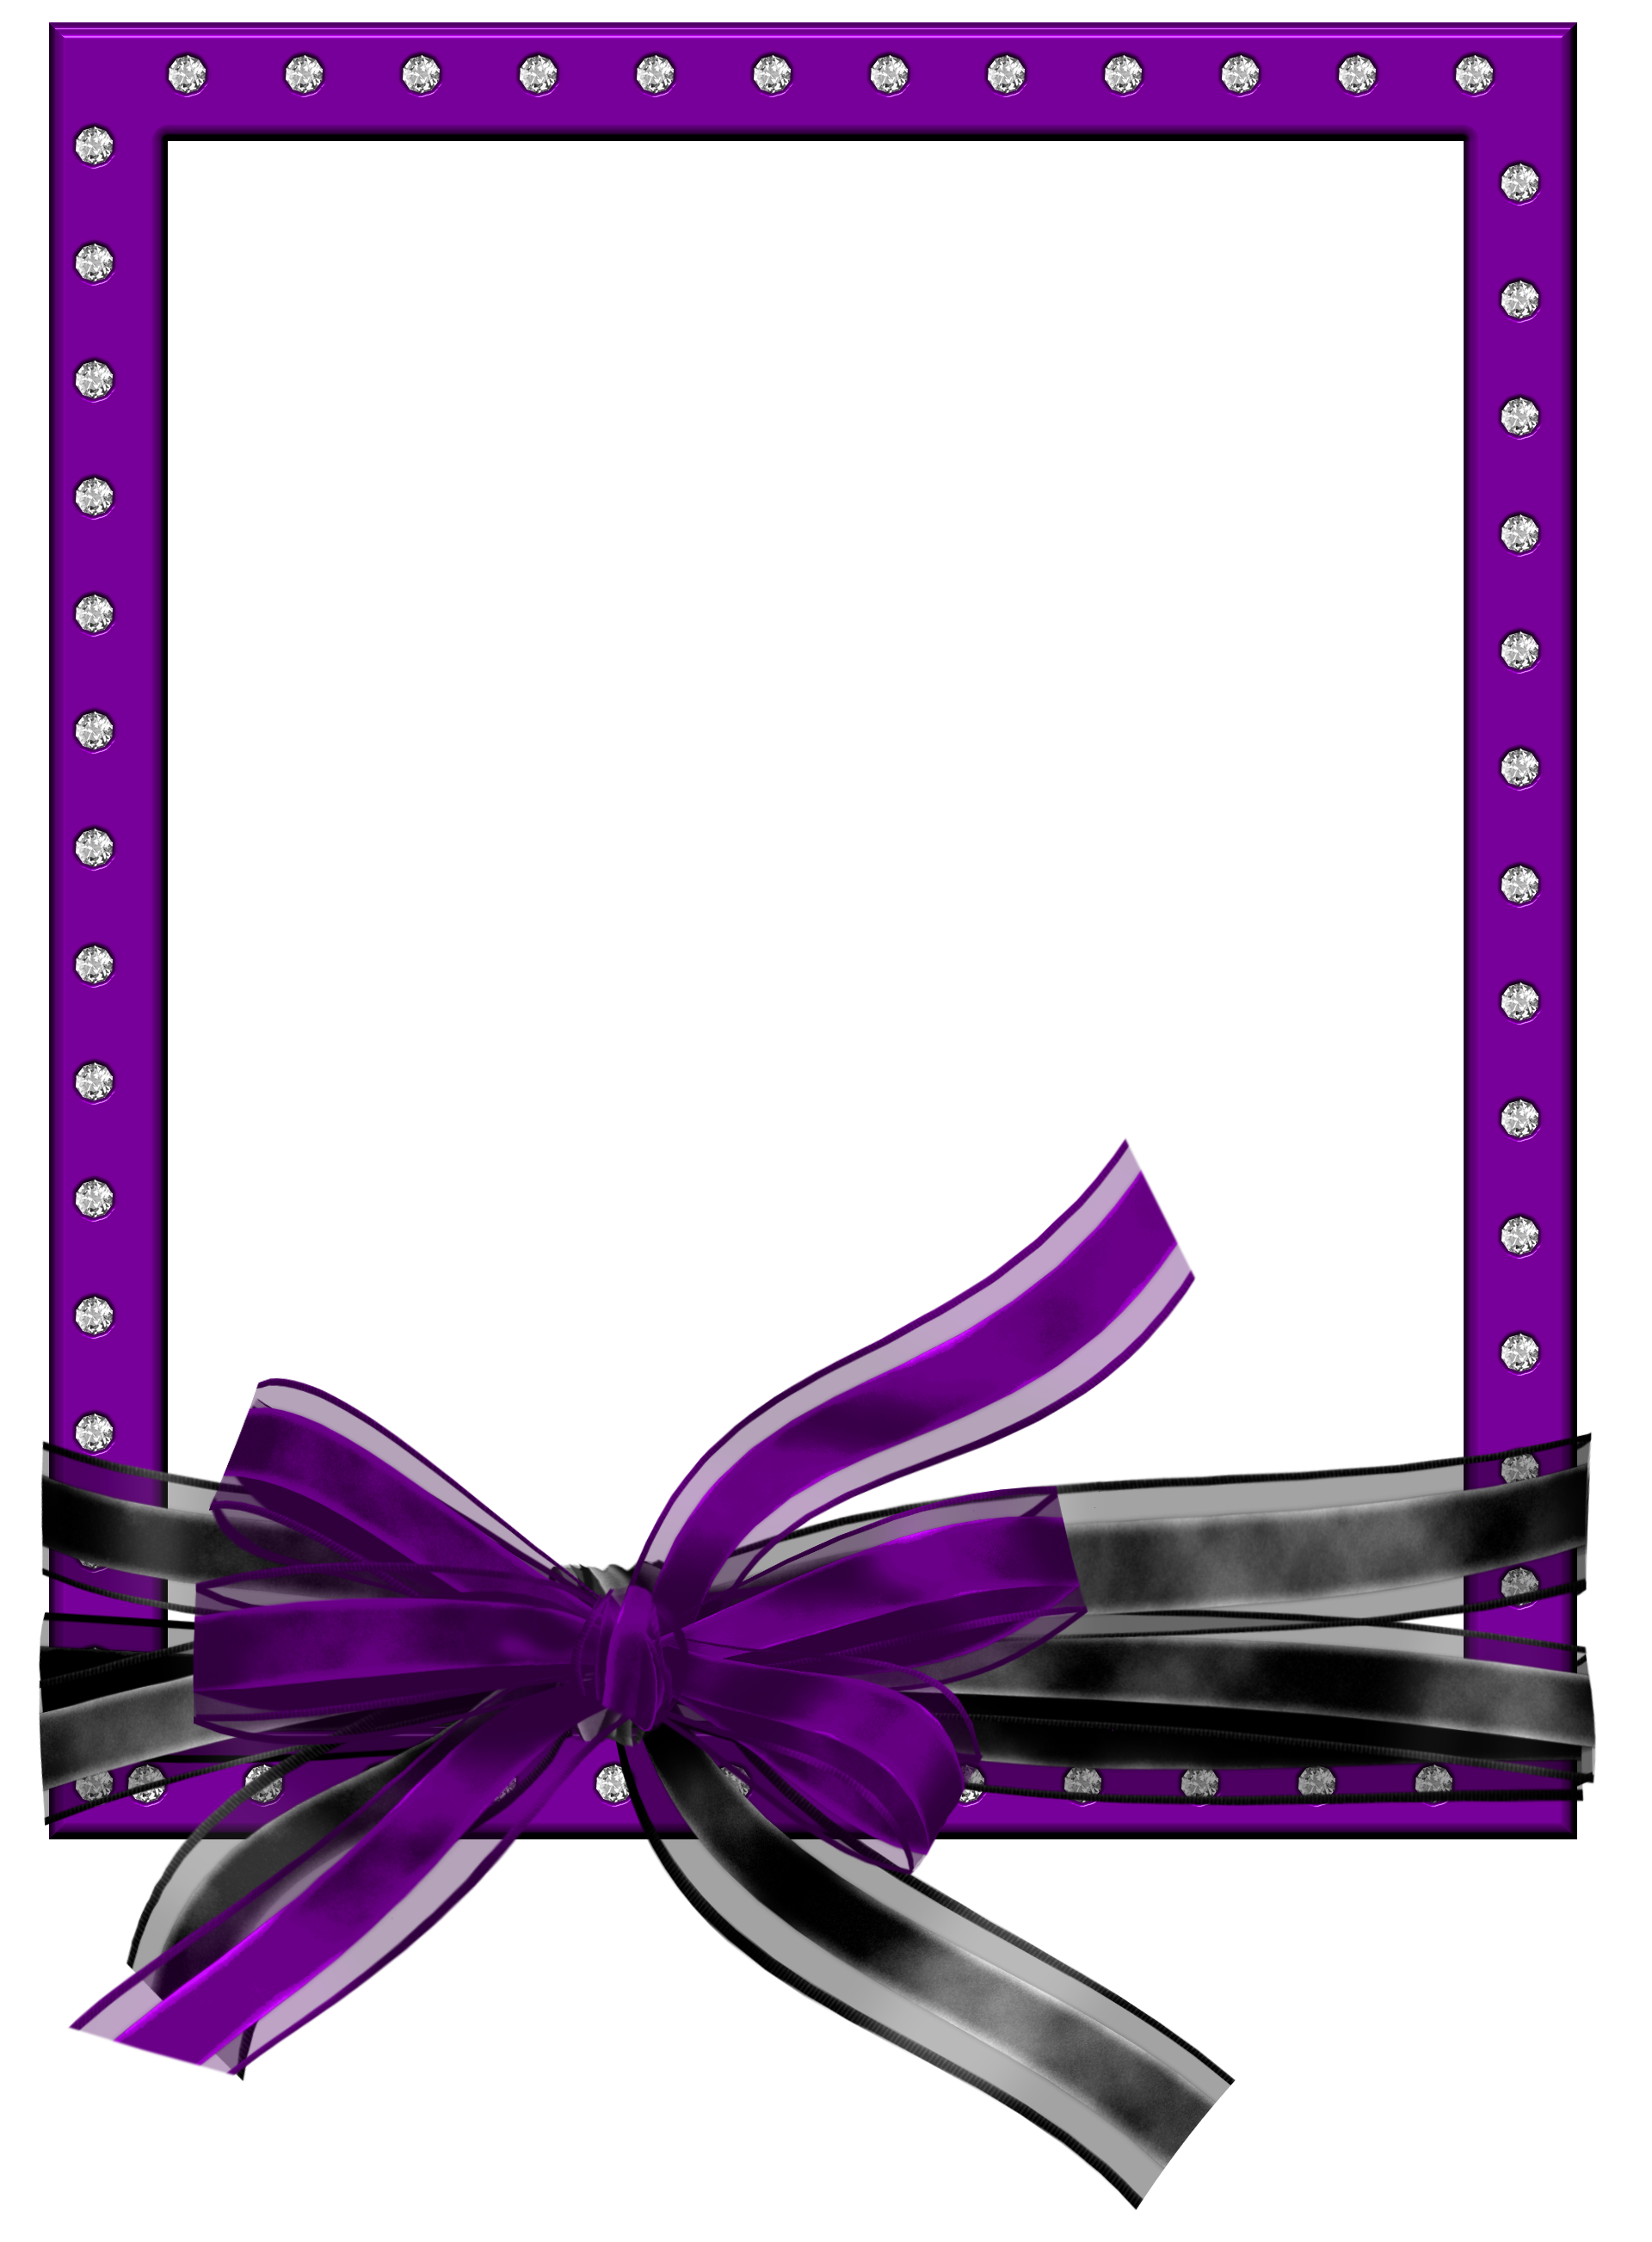 Purple ribbon border clipart graphic library library Purple PNG Photo Frame with Black and Purple Bow | Gallery ... graphic library library